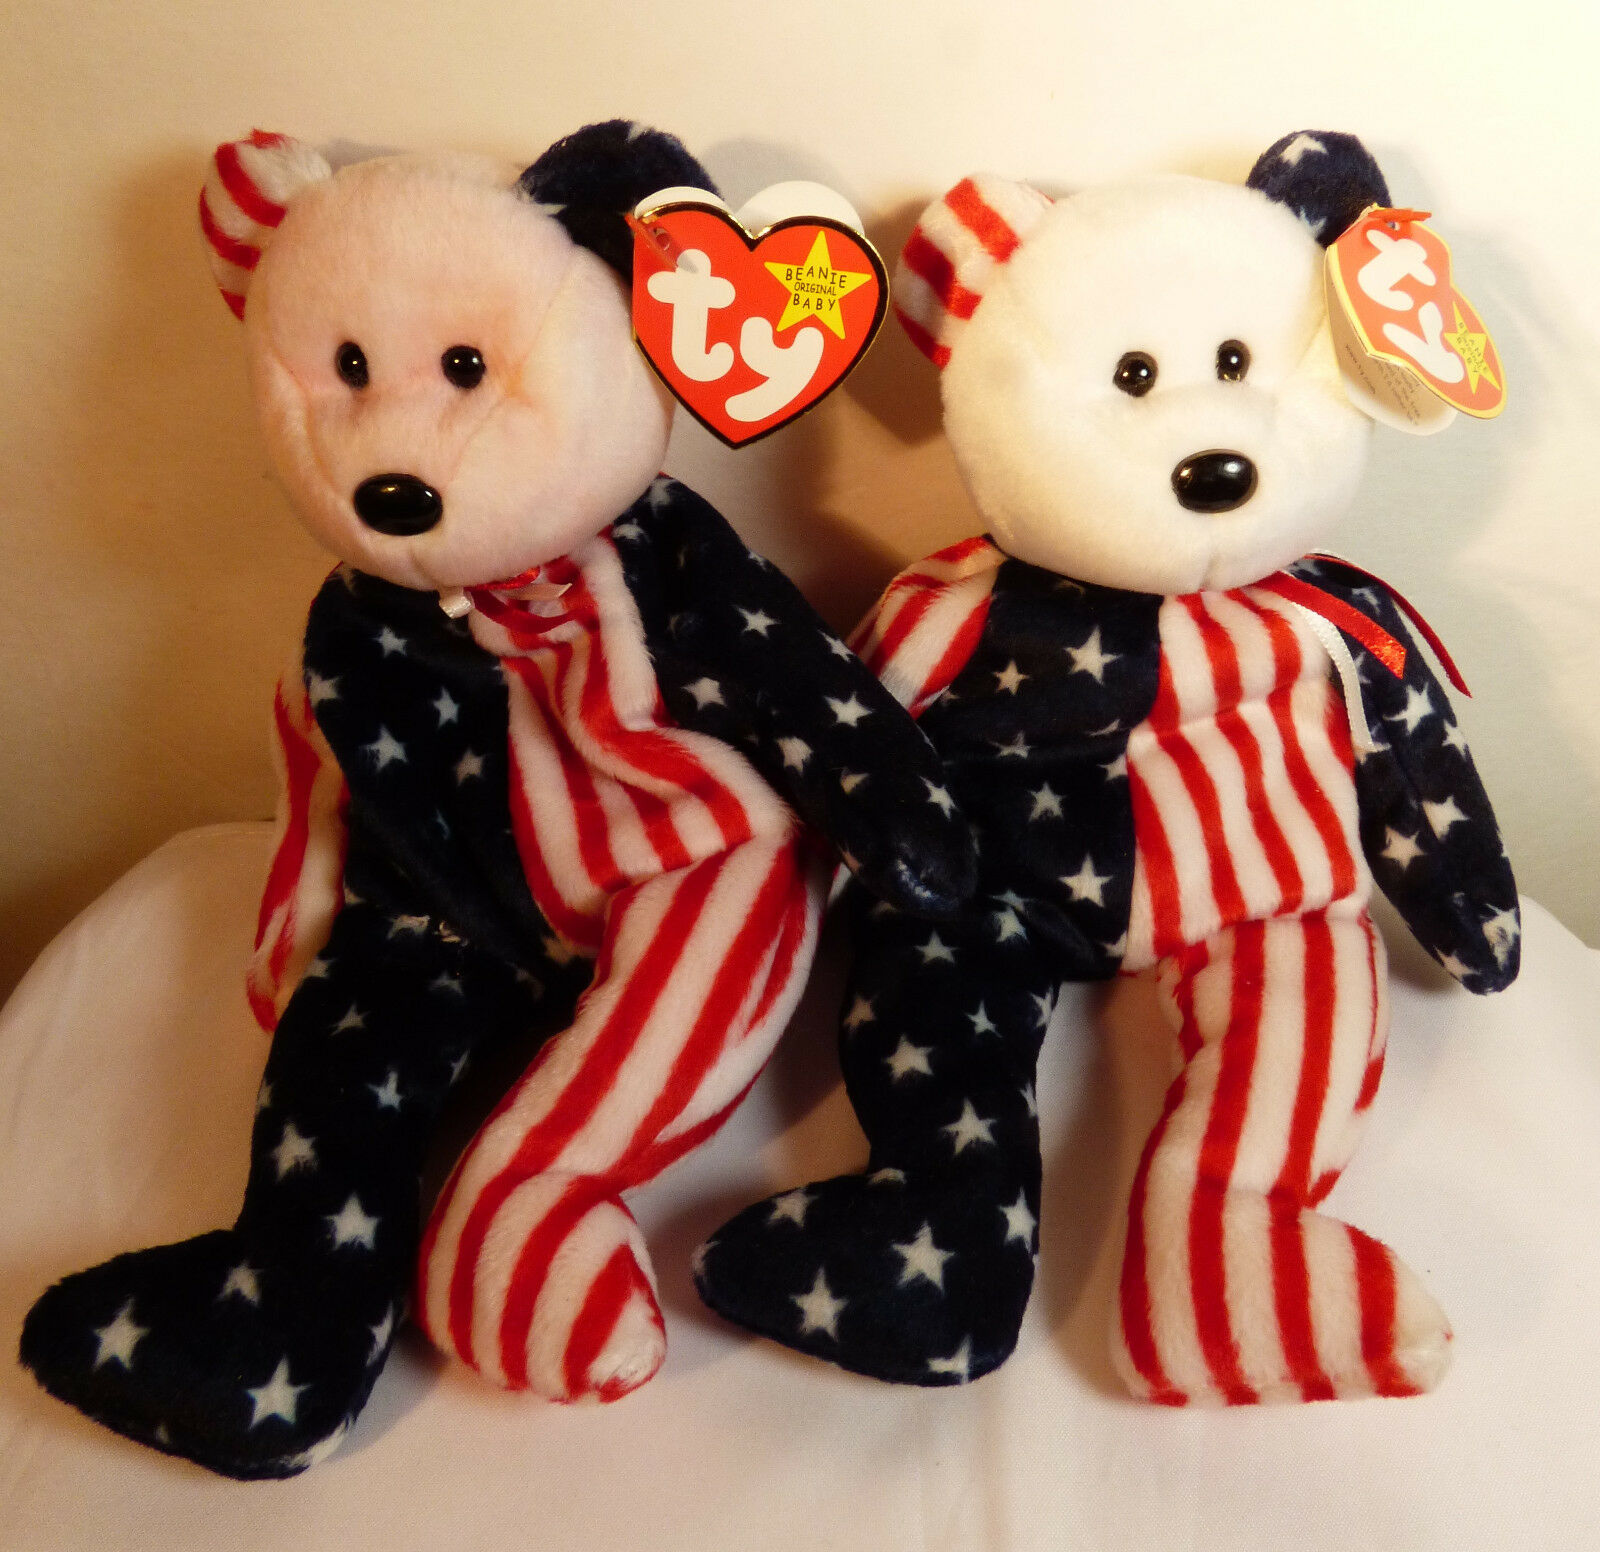 73a8e7306e3 Set of 2 Ty Beanie Baby Spangle RARE Tie Dye Pink   white Head with tags 1  of 1Only 1 available See More